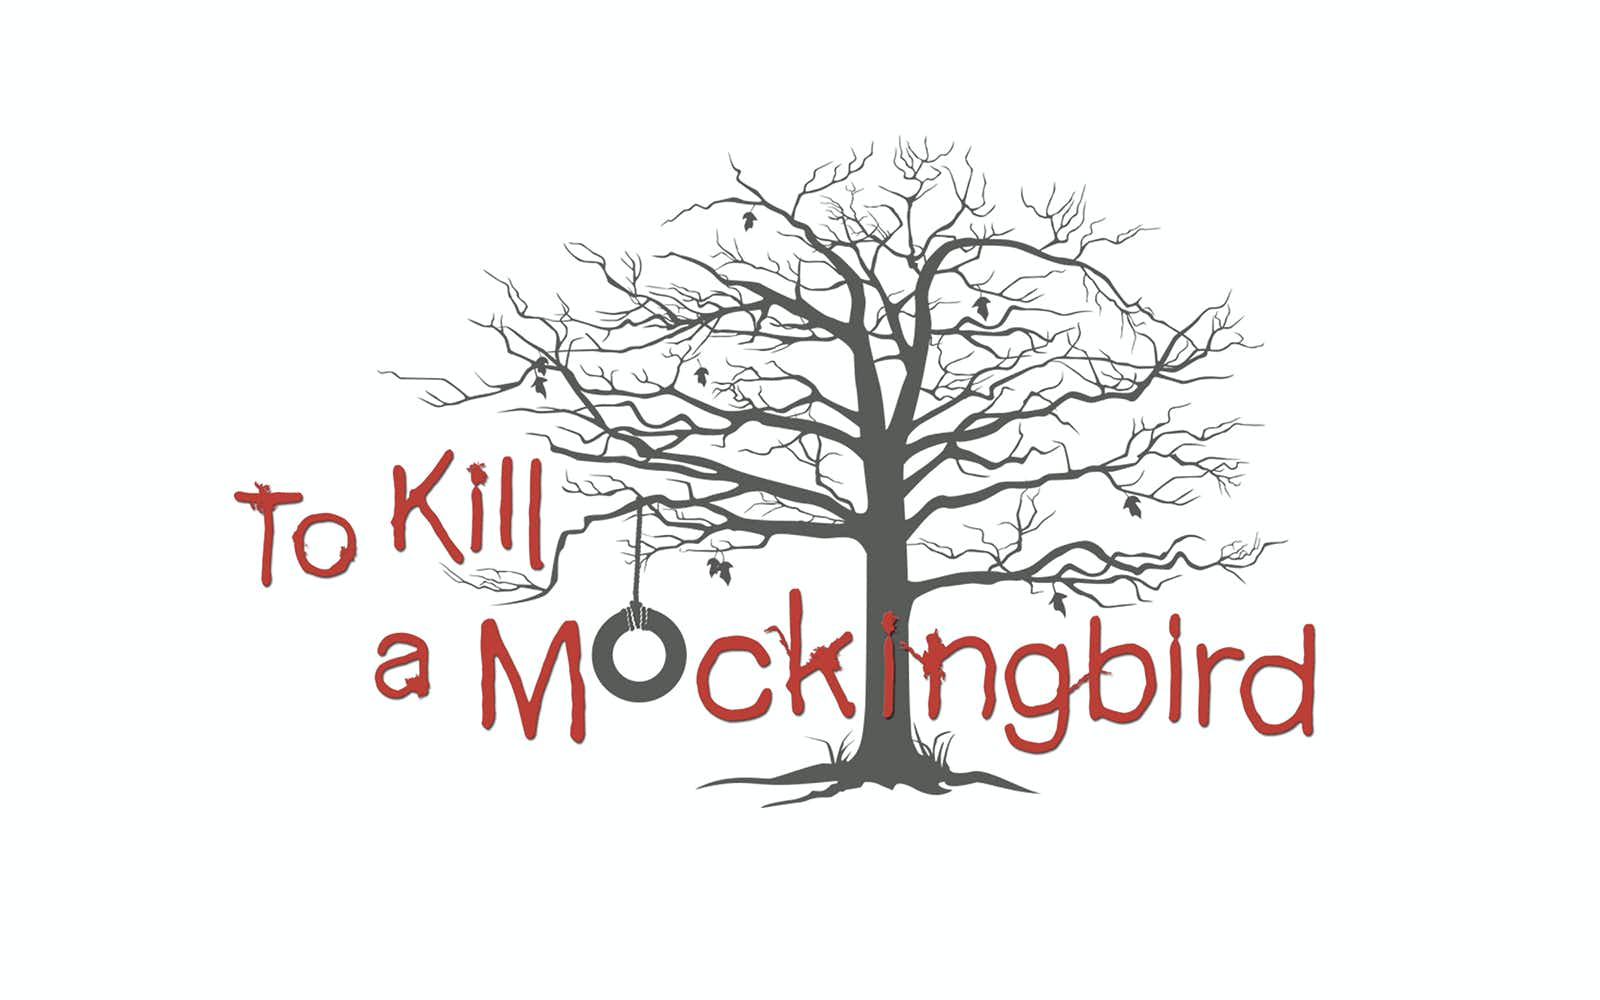 To Kill a Mockingbird Broadway Discount Tickets